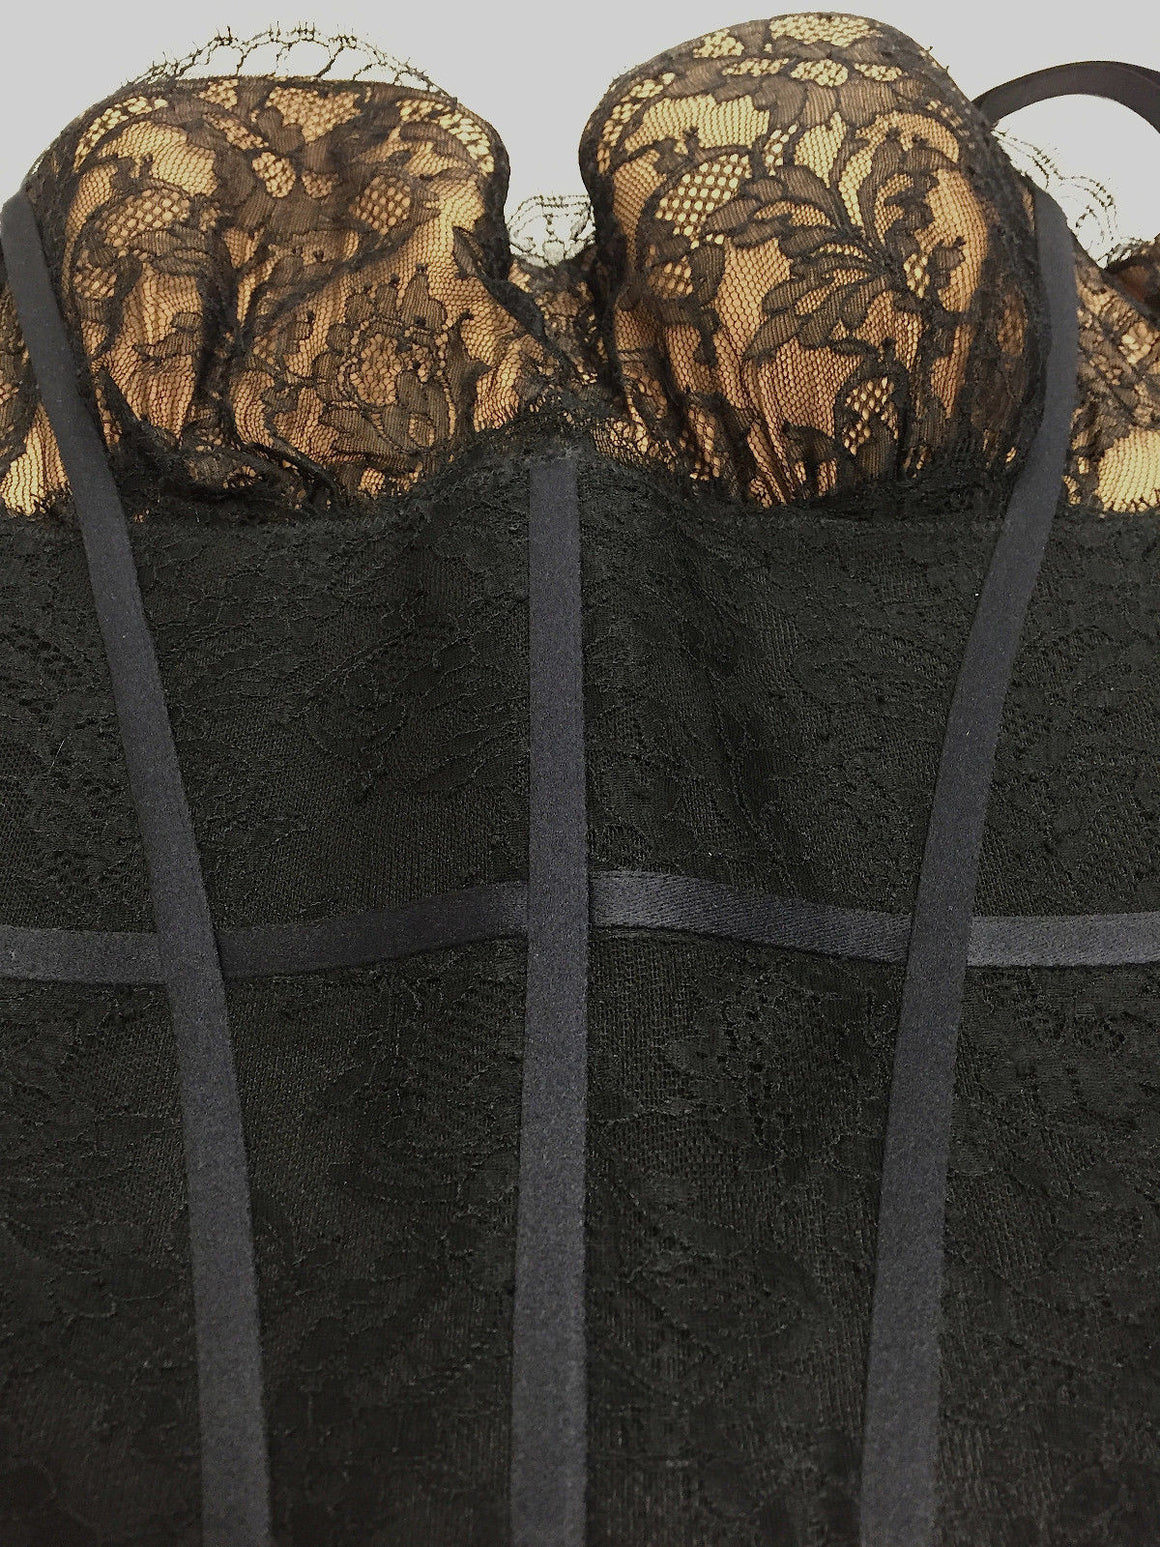 bisbiz.com LA PERLA   Black Lace Nude Underwire Bra Elastic Bustier w/Detachable Straps   Size: US34 / IT2 - Bis Luxury Resale